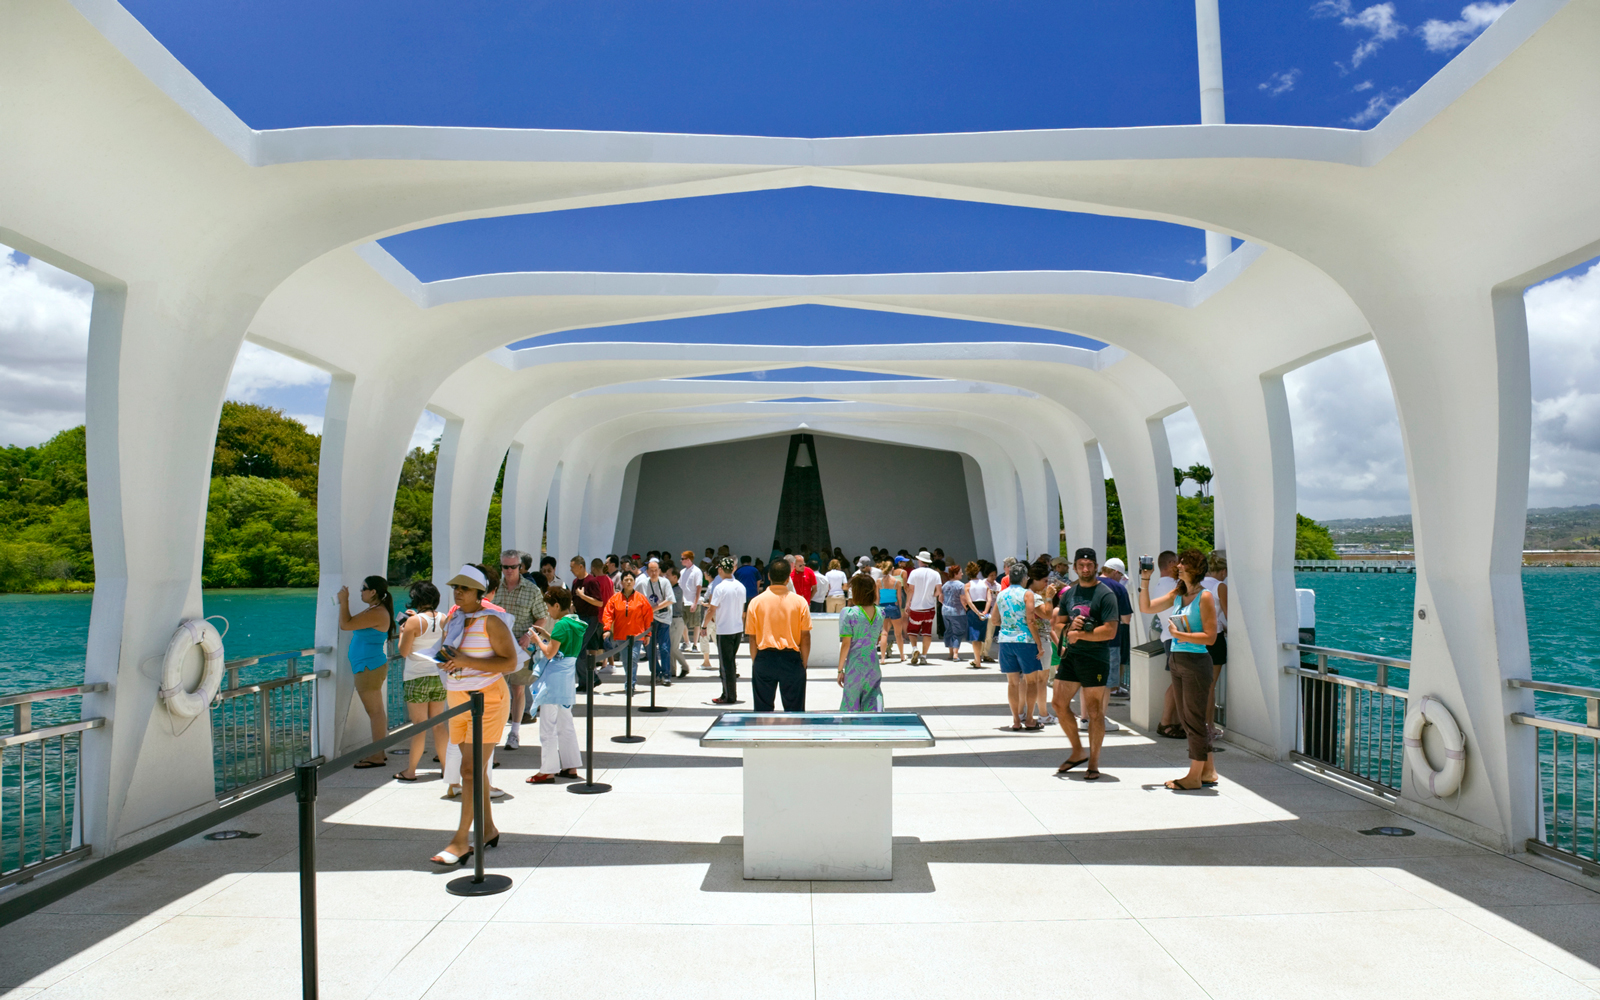 Tourists at the U.S.S. Arizona Memorial